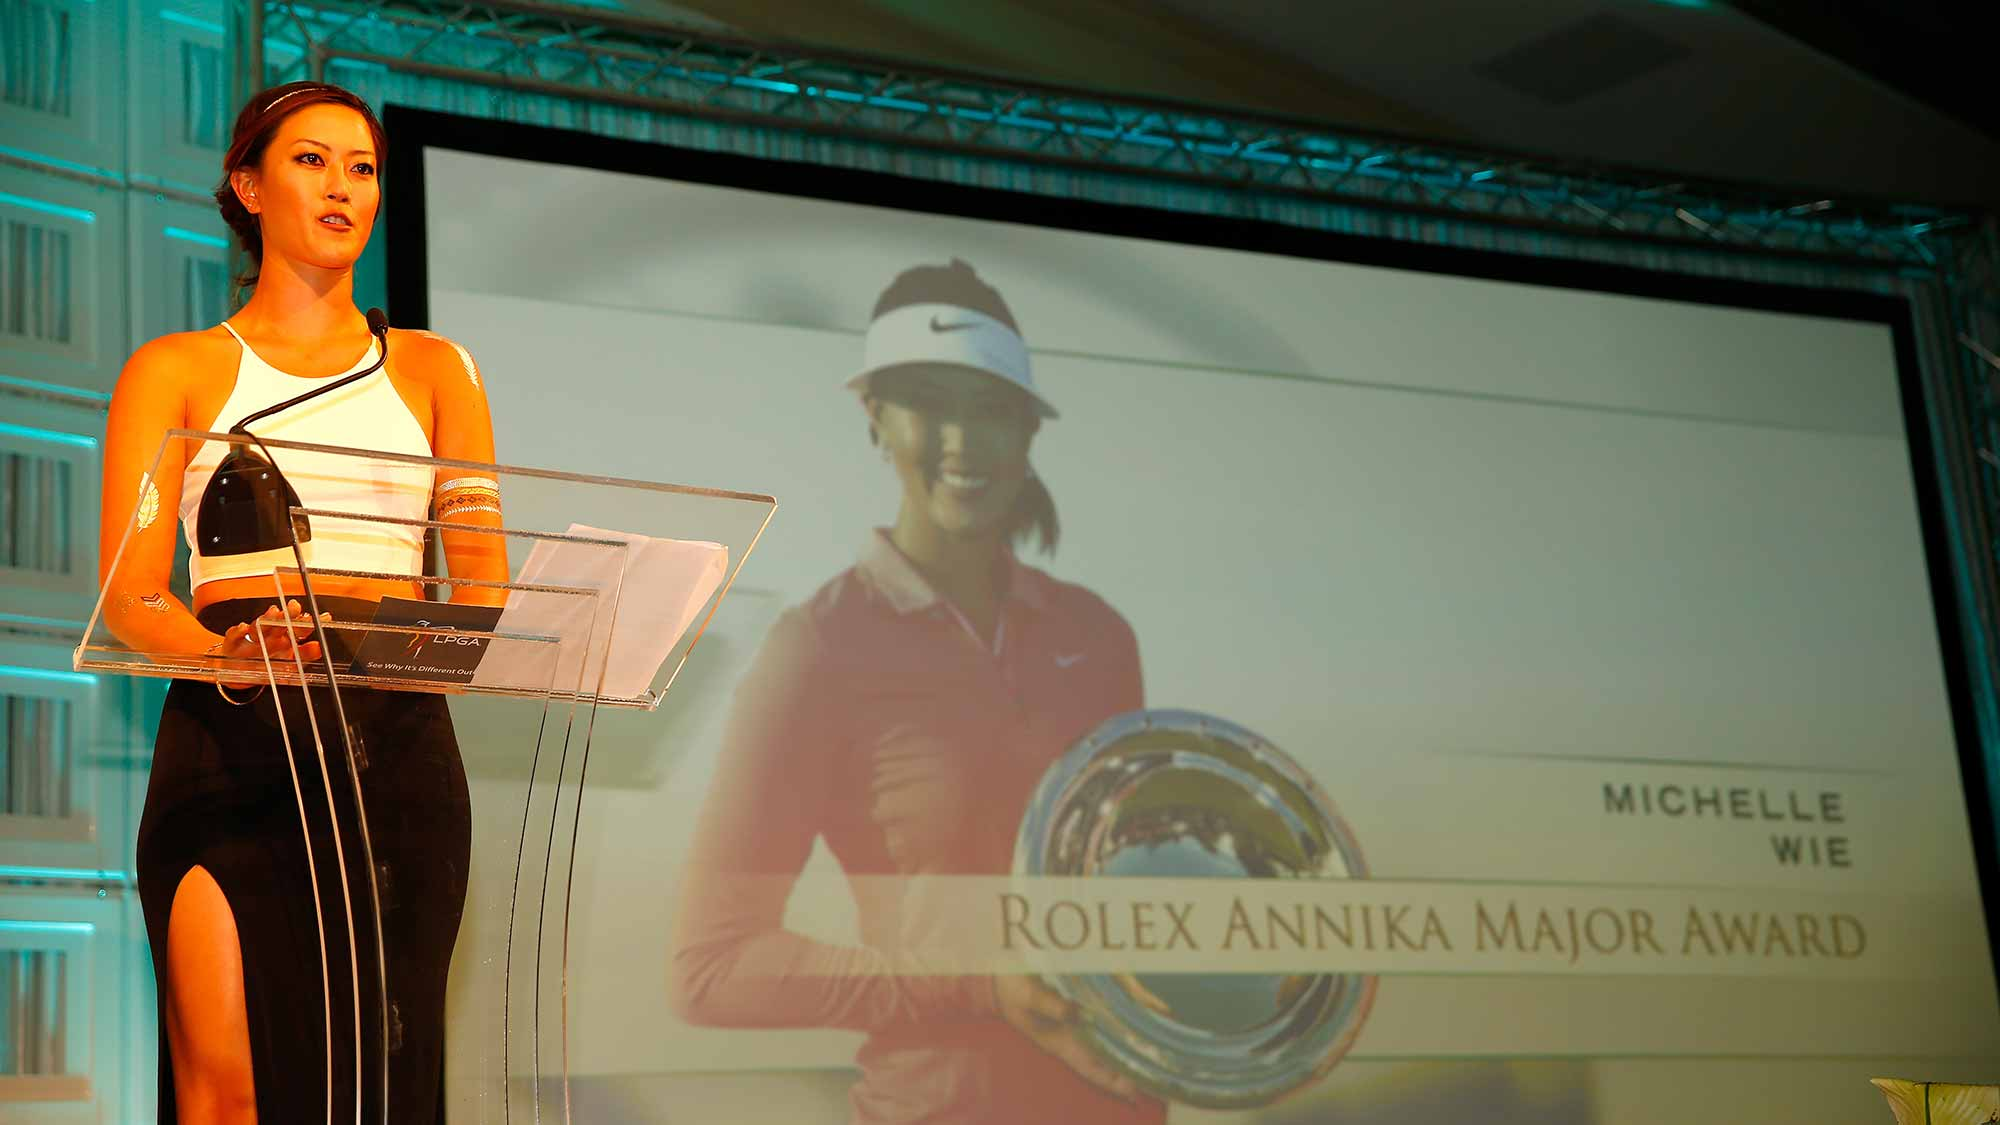 Michelle Wie during the Rolex Player Awards